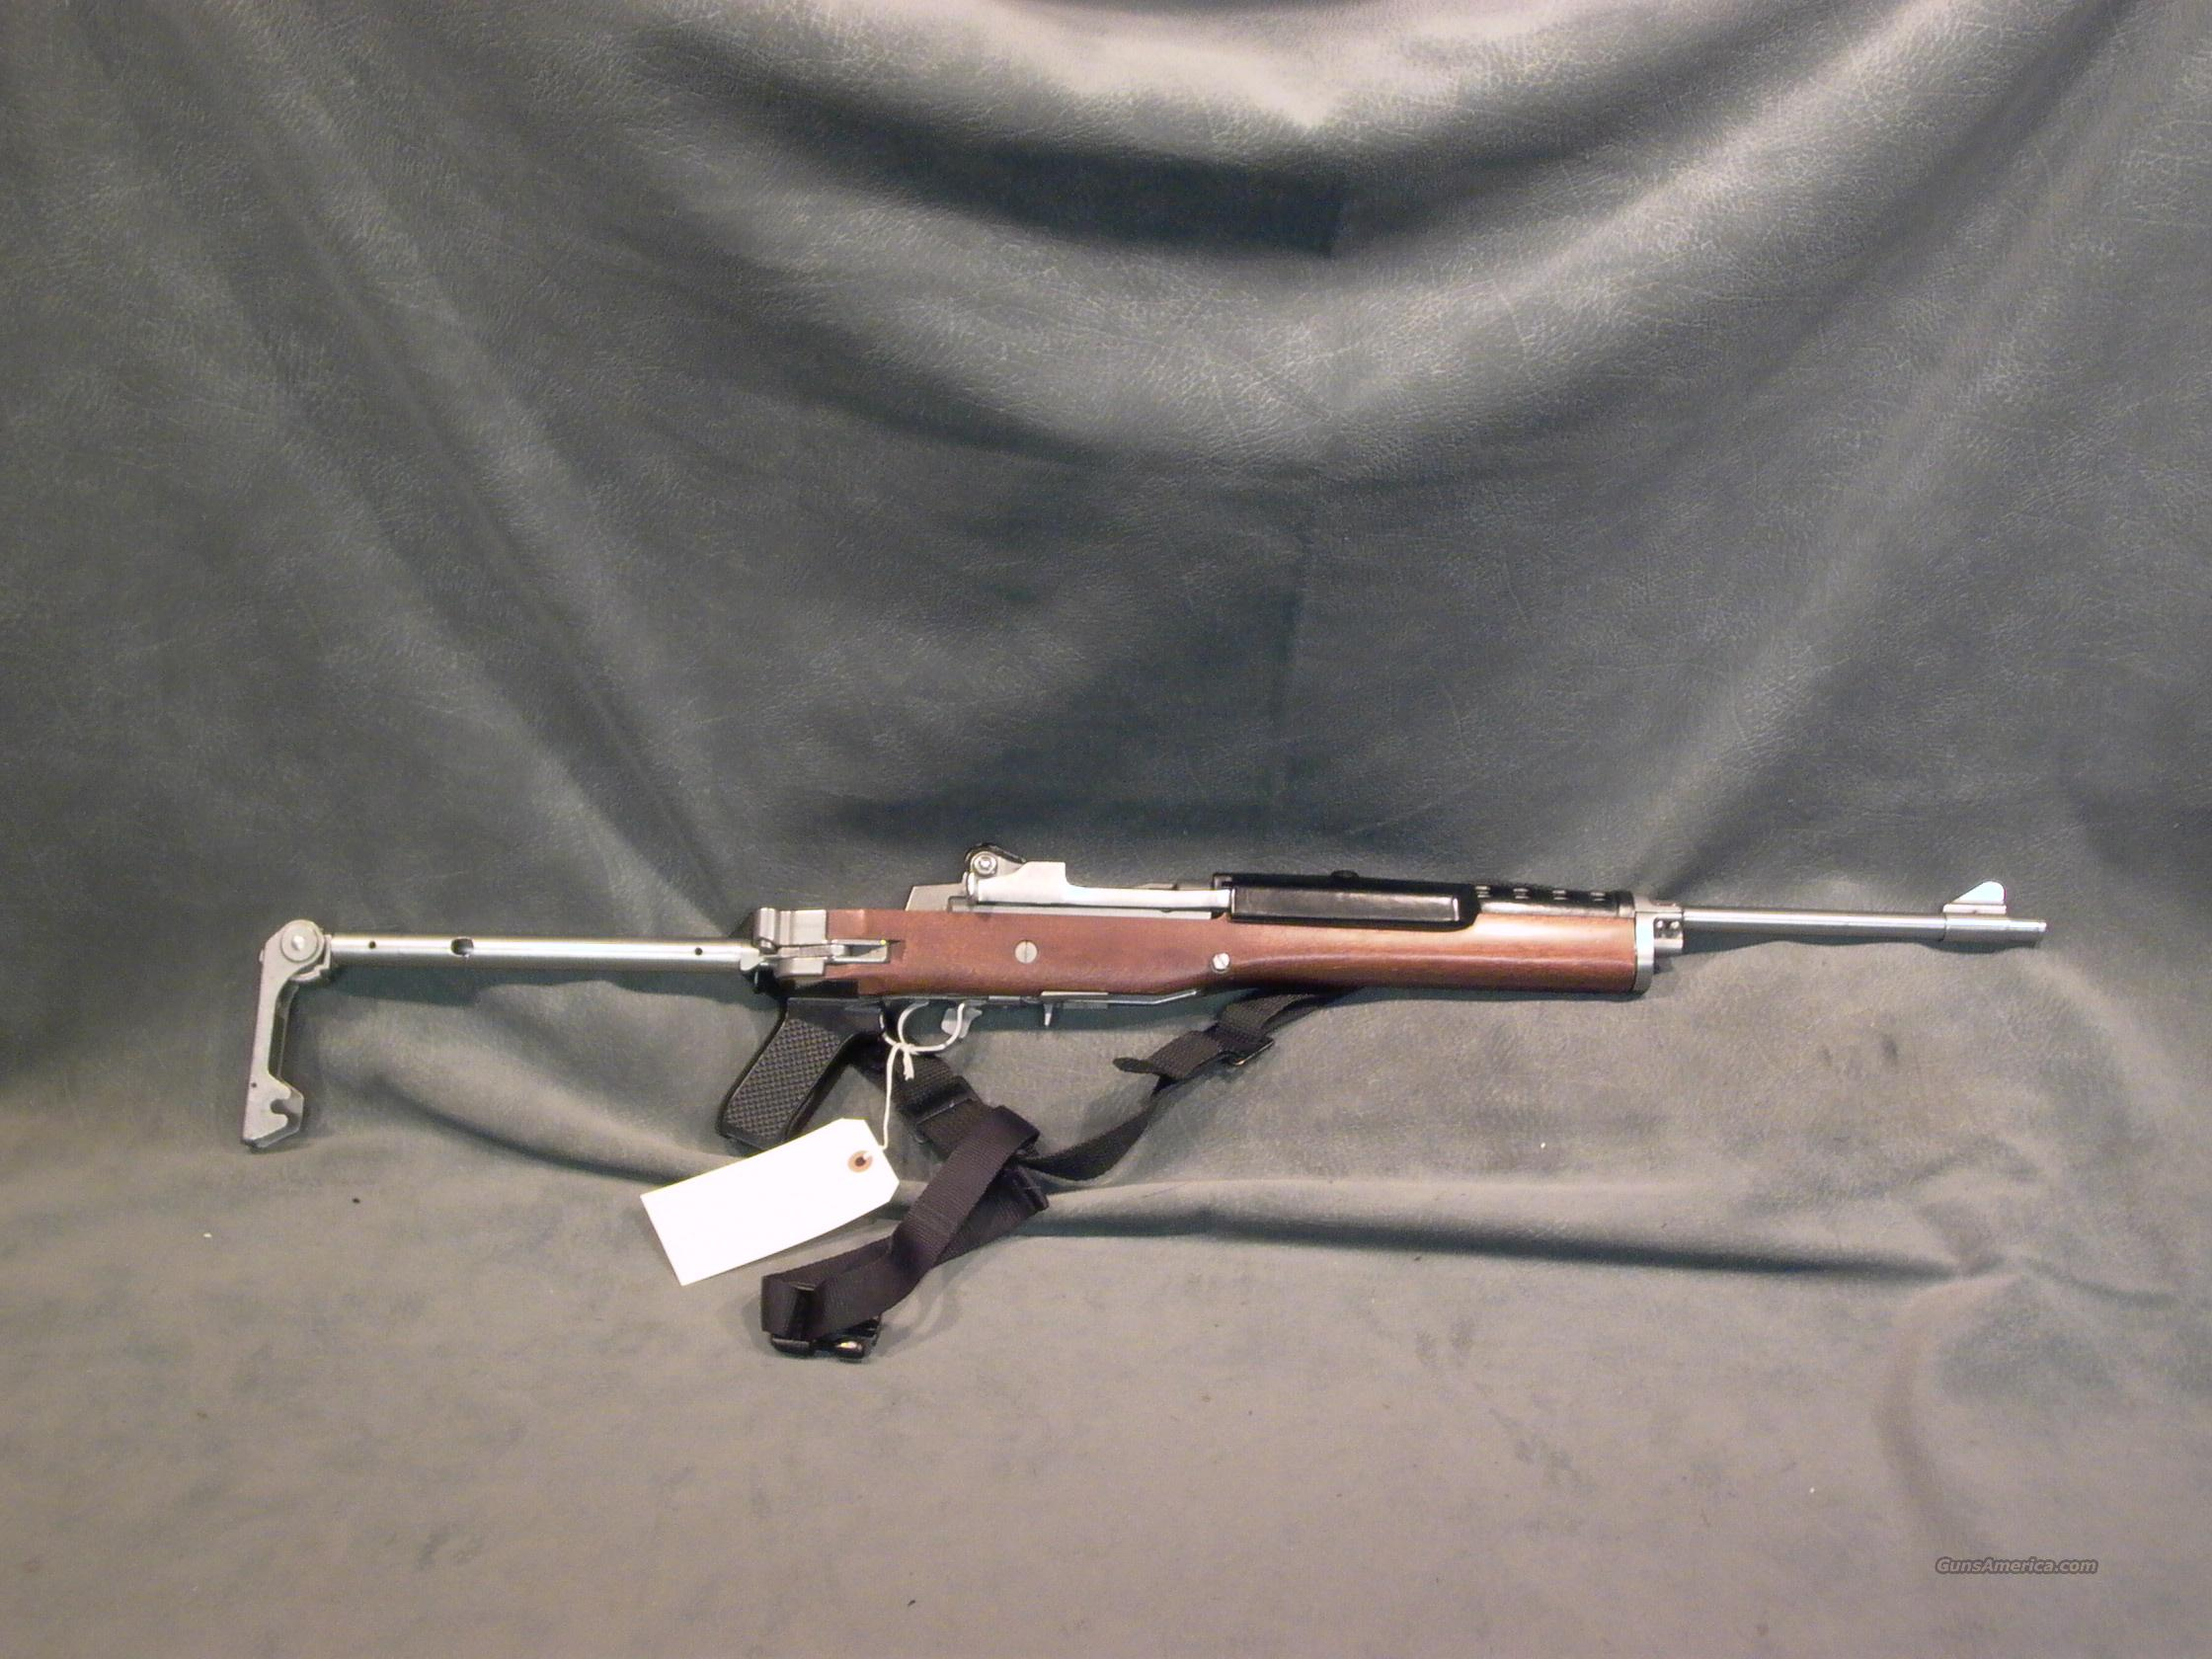 Ruger Mini 14 factory folder 223 stainless  Guns > Rifles > Ruger Rifles > Mini-14 Type